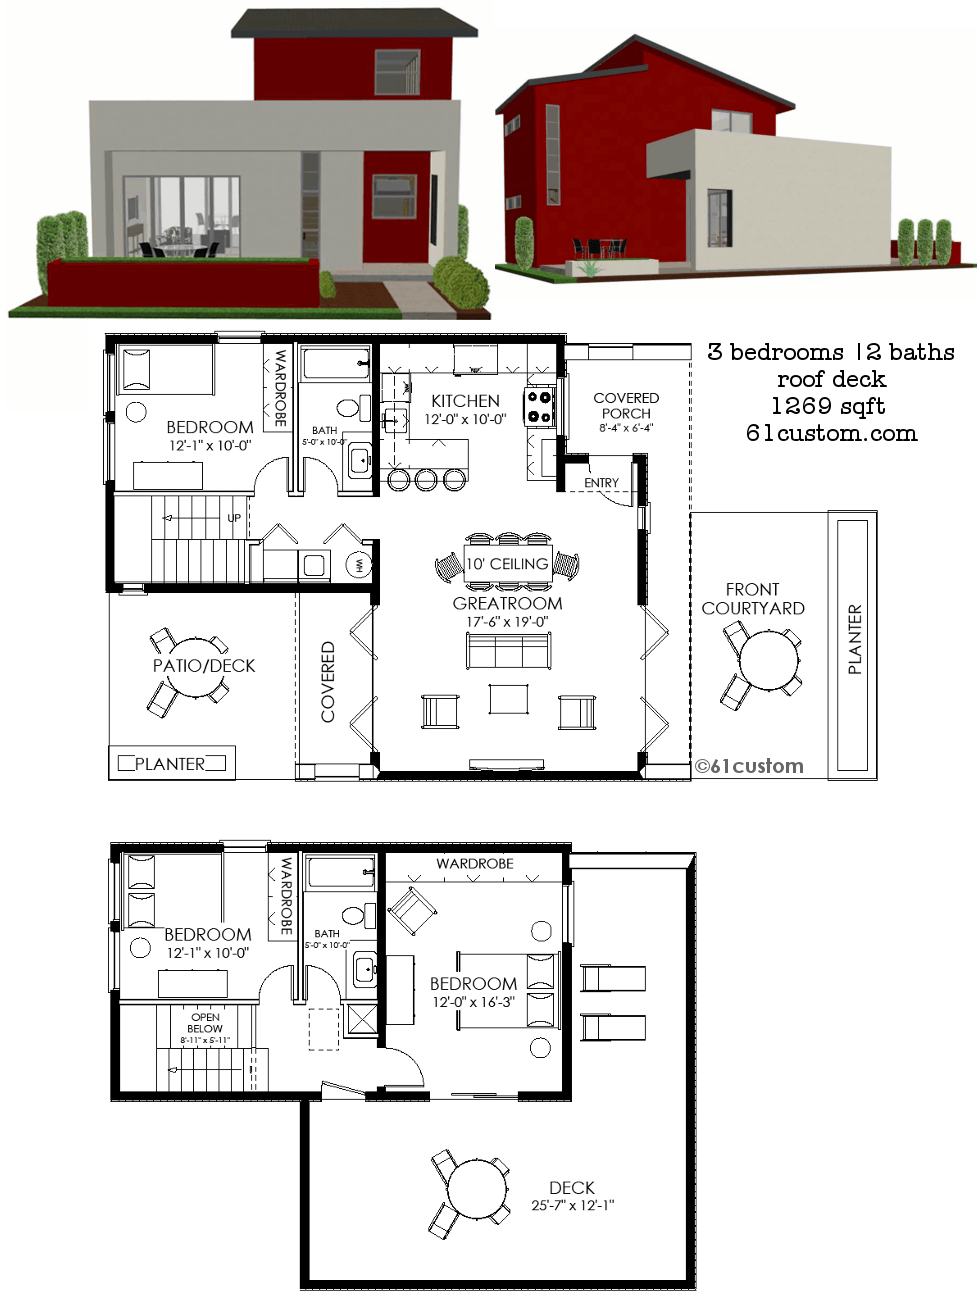 Contemporary small house plan 61custom contemporary for Contemporary house designs